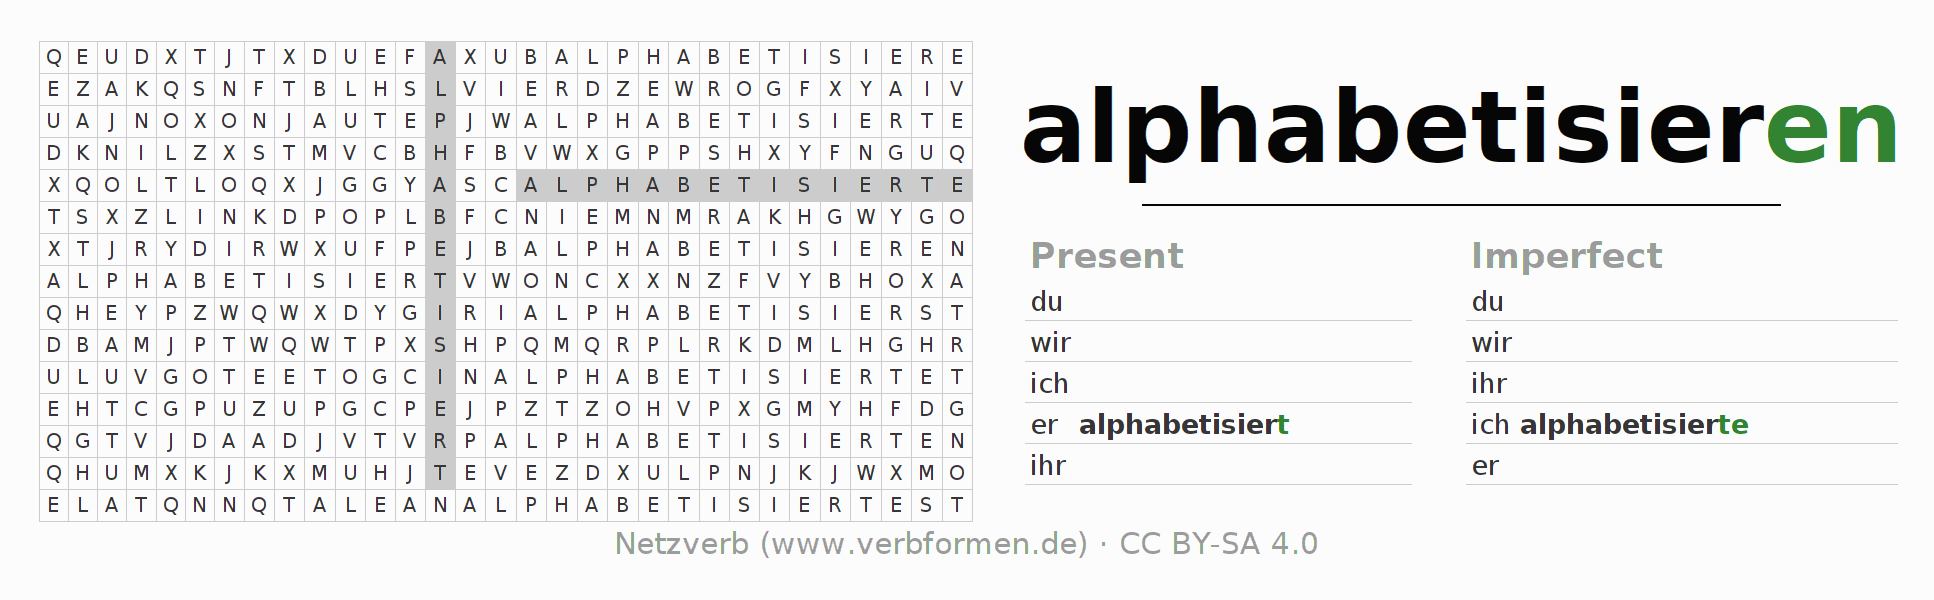 Word search puzzle for the conjugation of the verb alphabetisieren